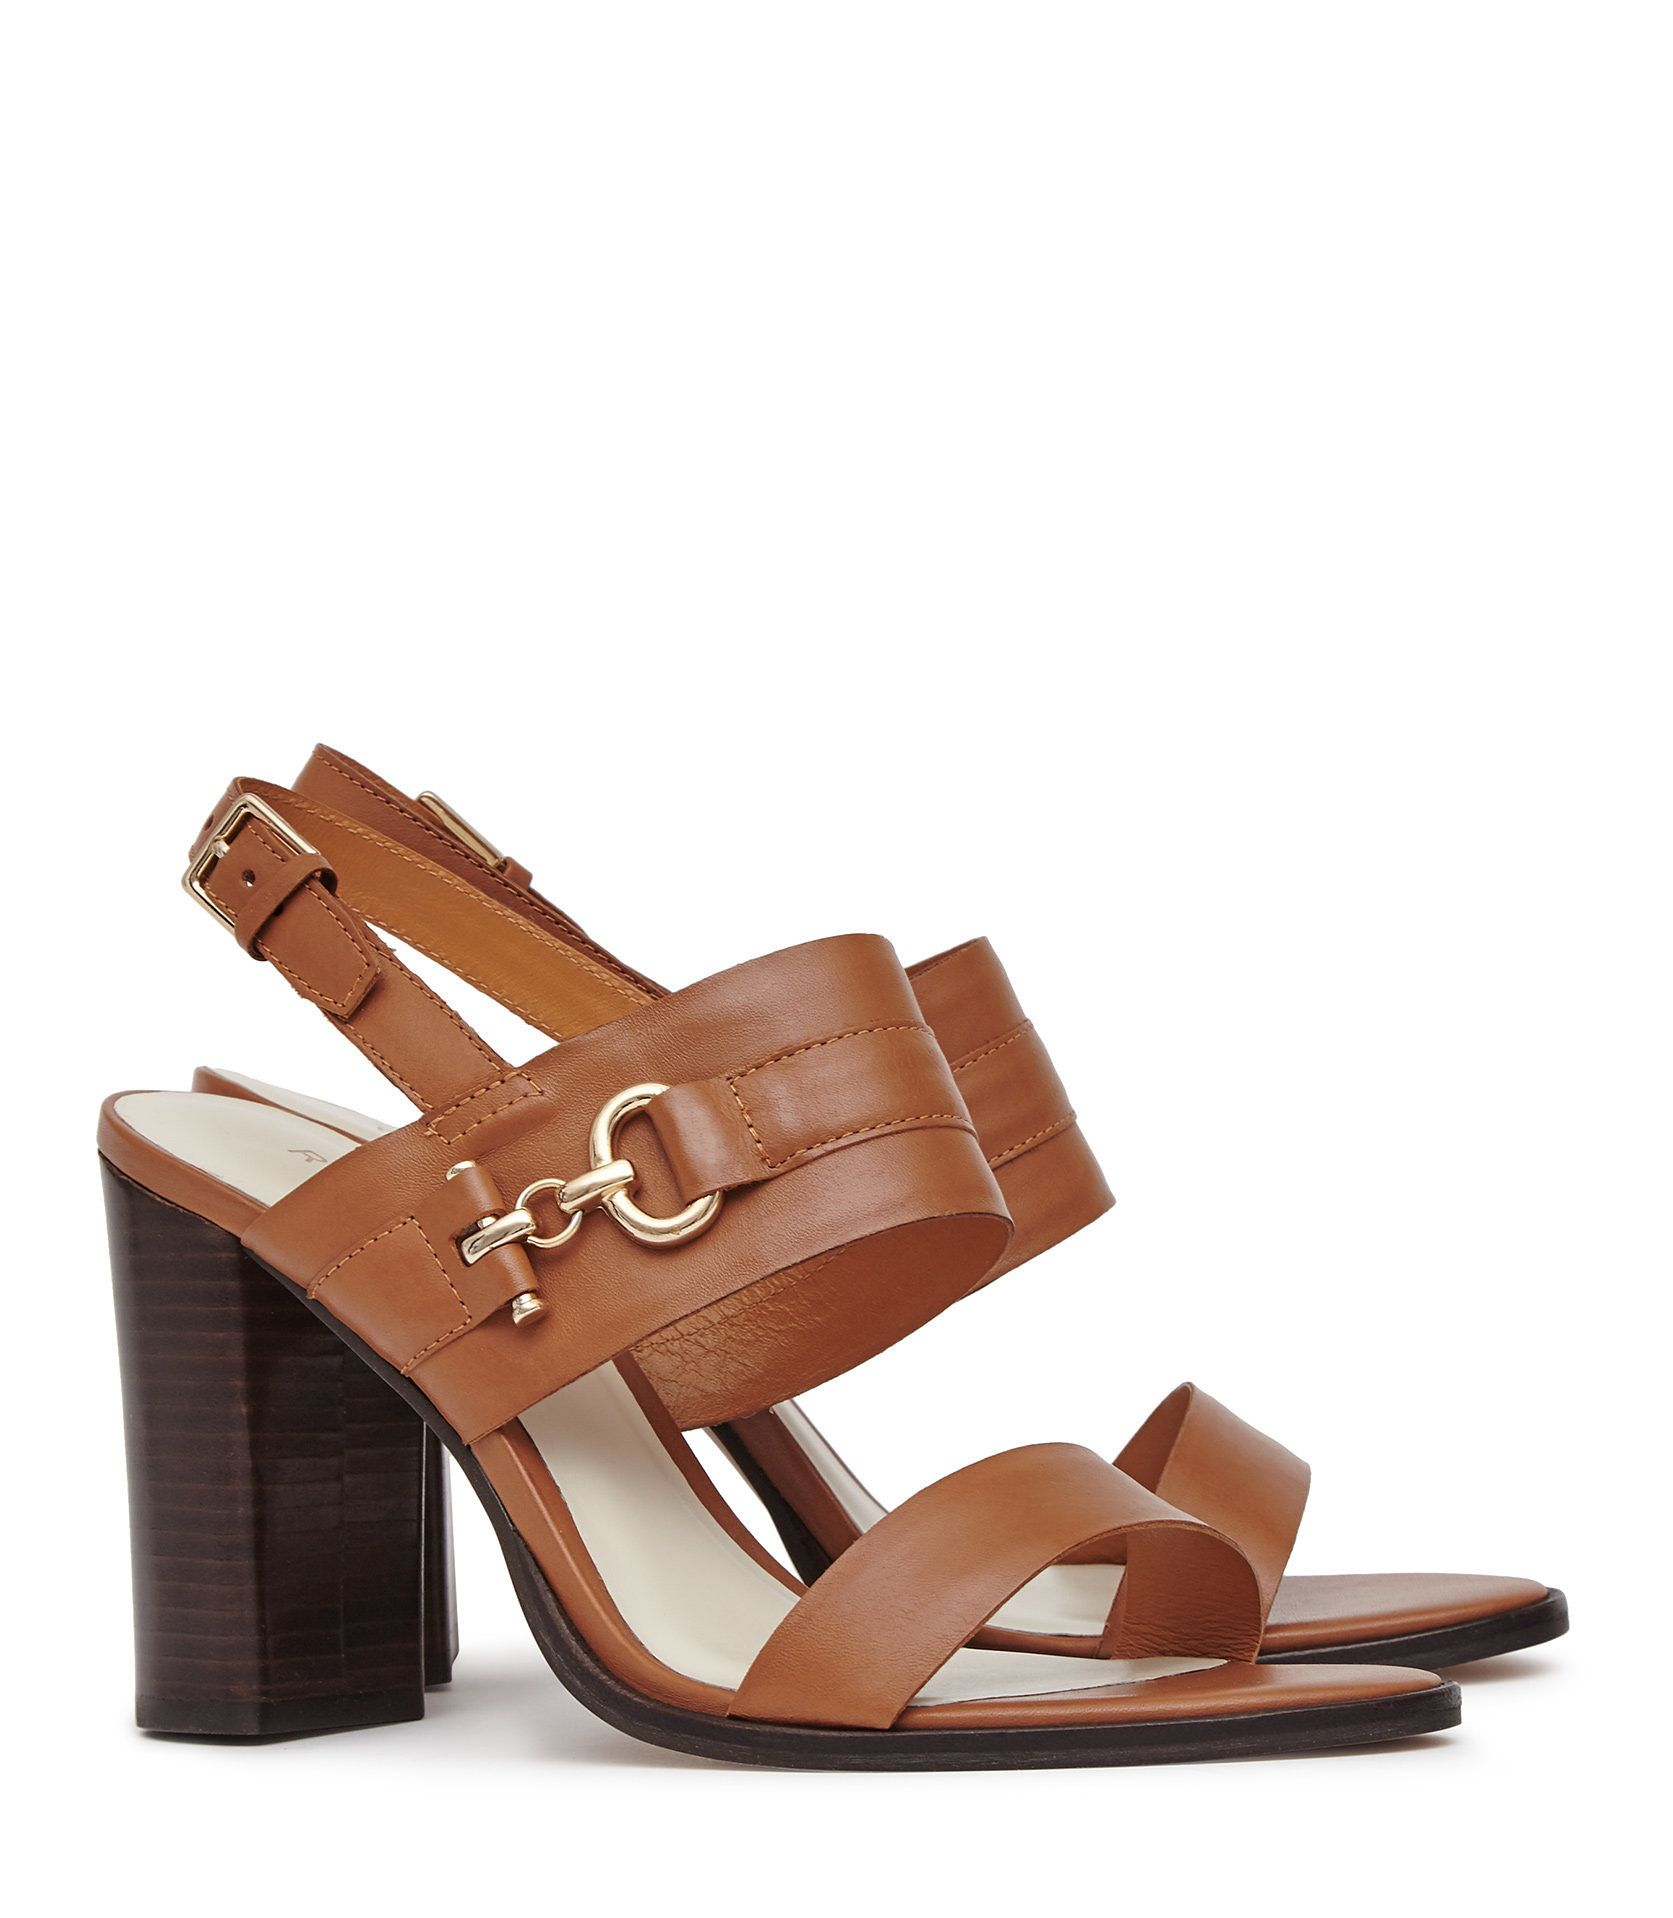 d0e49e86a6dc Adelina Tan Block-Heel Sandals - REISS   The adelina block-heel sandals in  tan plays its part in our iconic shoes collection and is available to buy  online ...